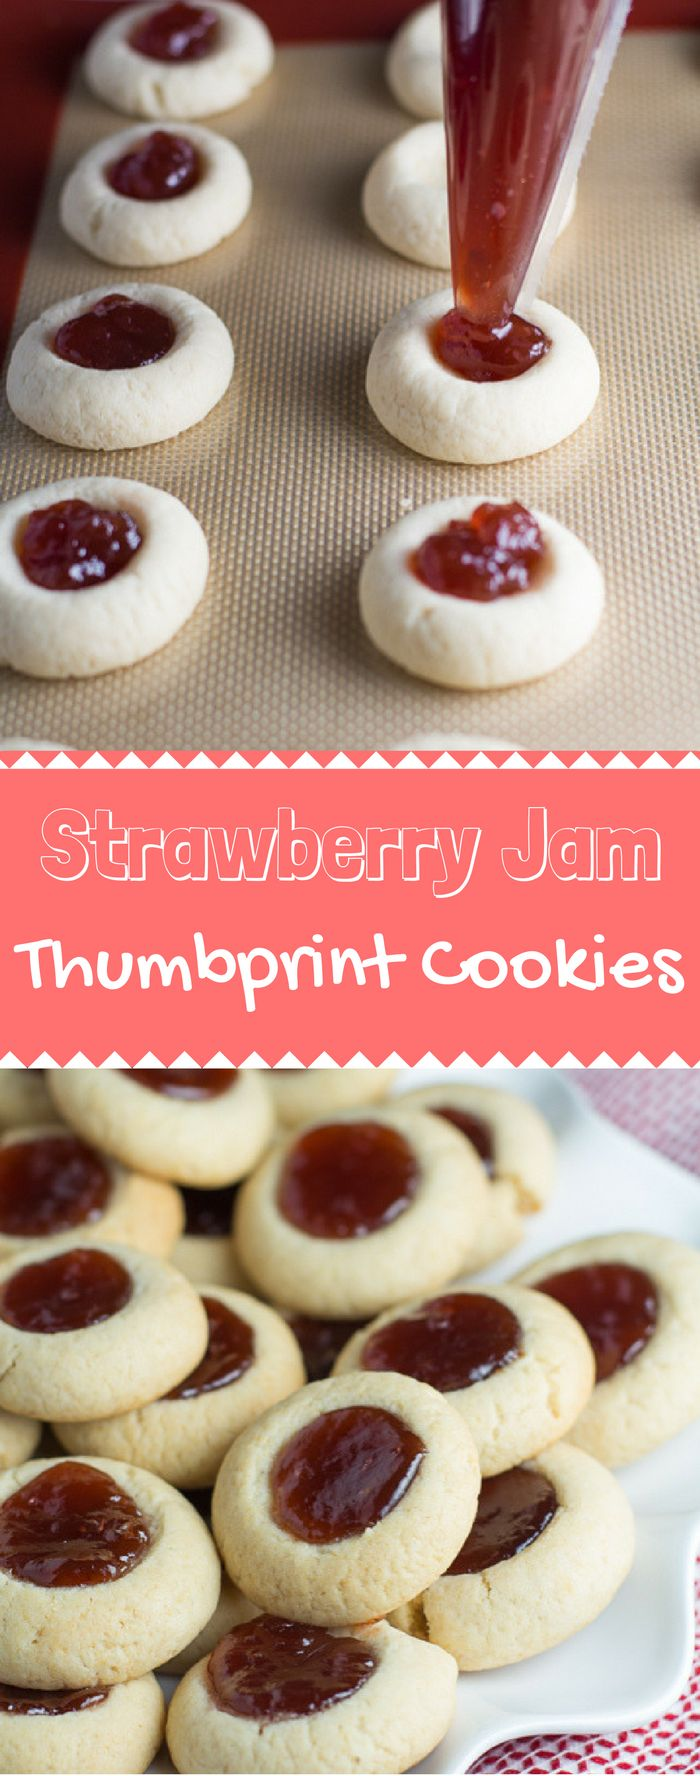 These strawberry thumbprint cookies are easy, versatile, and addictive -- the possibilities are truly endless here!